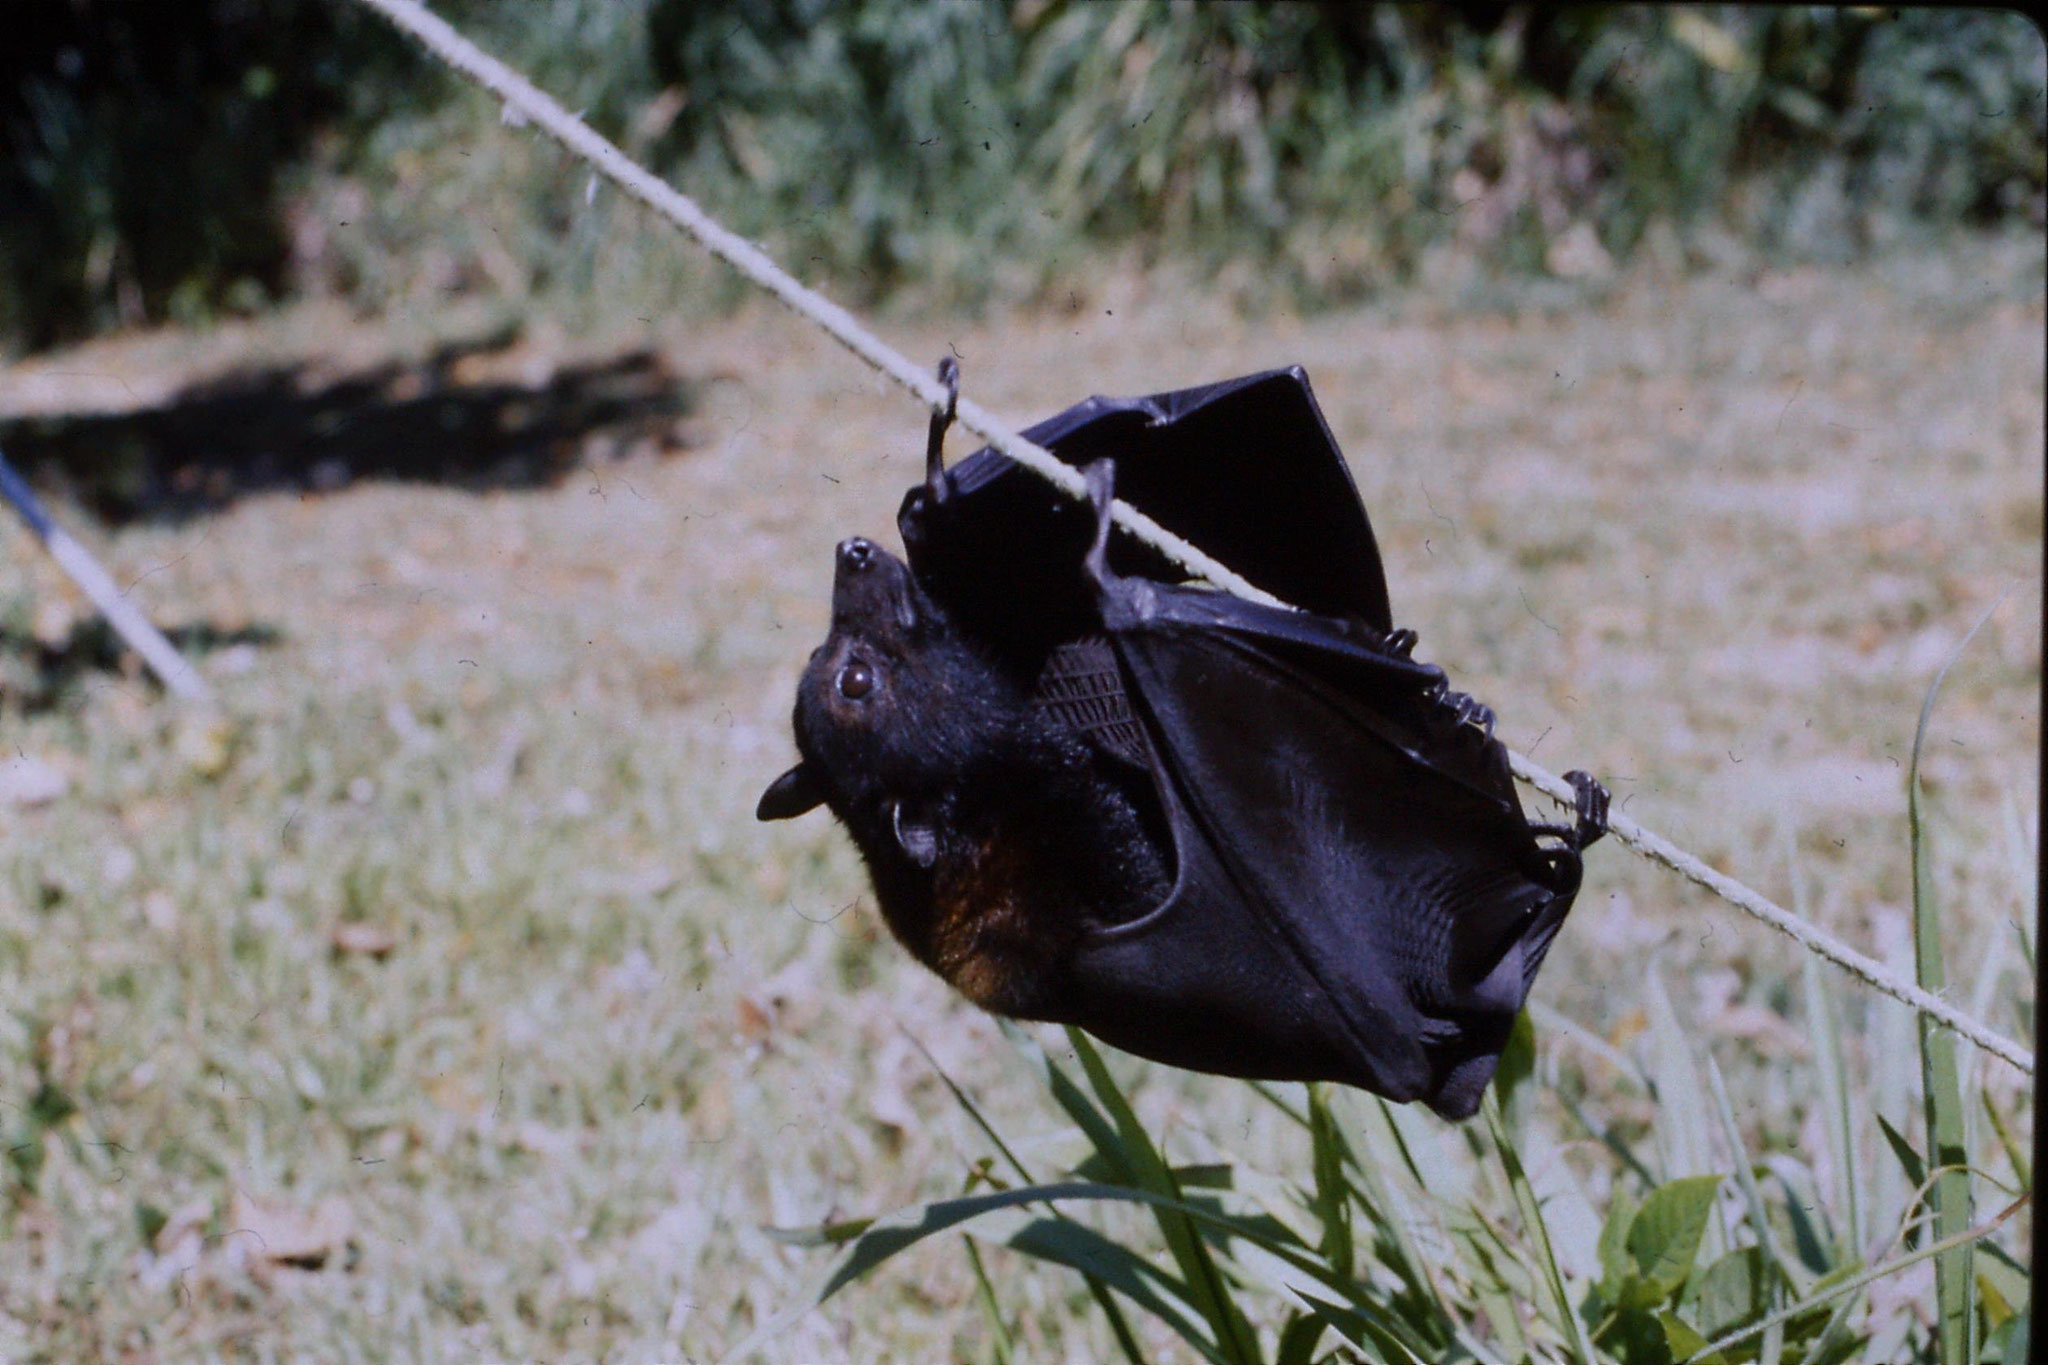 27/10/1990: 25: Cape Tribulation, flying foxes at High and Brigitta's place in Cairns